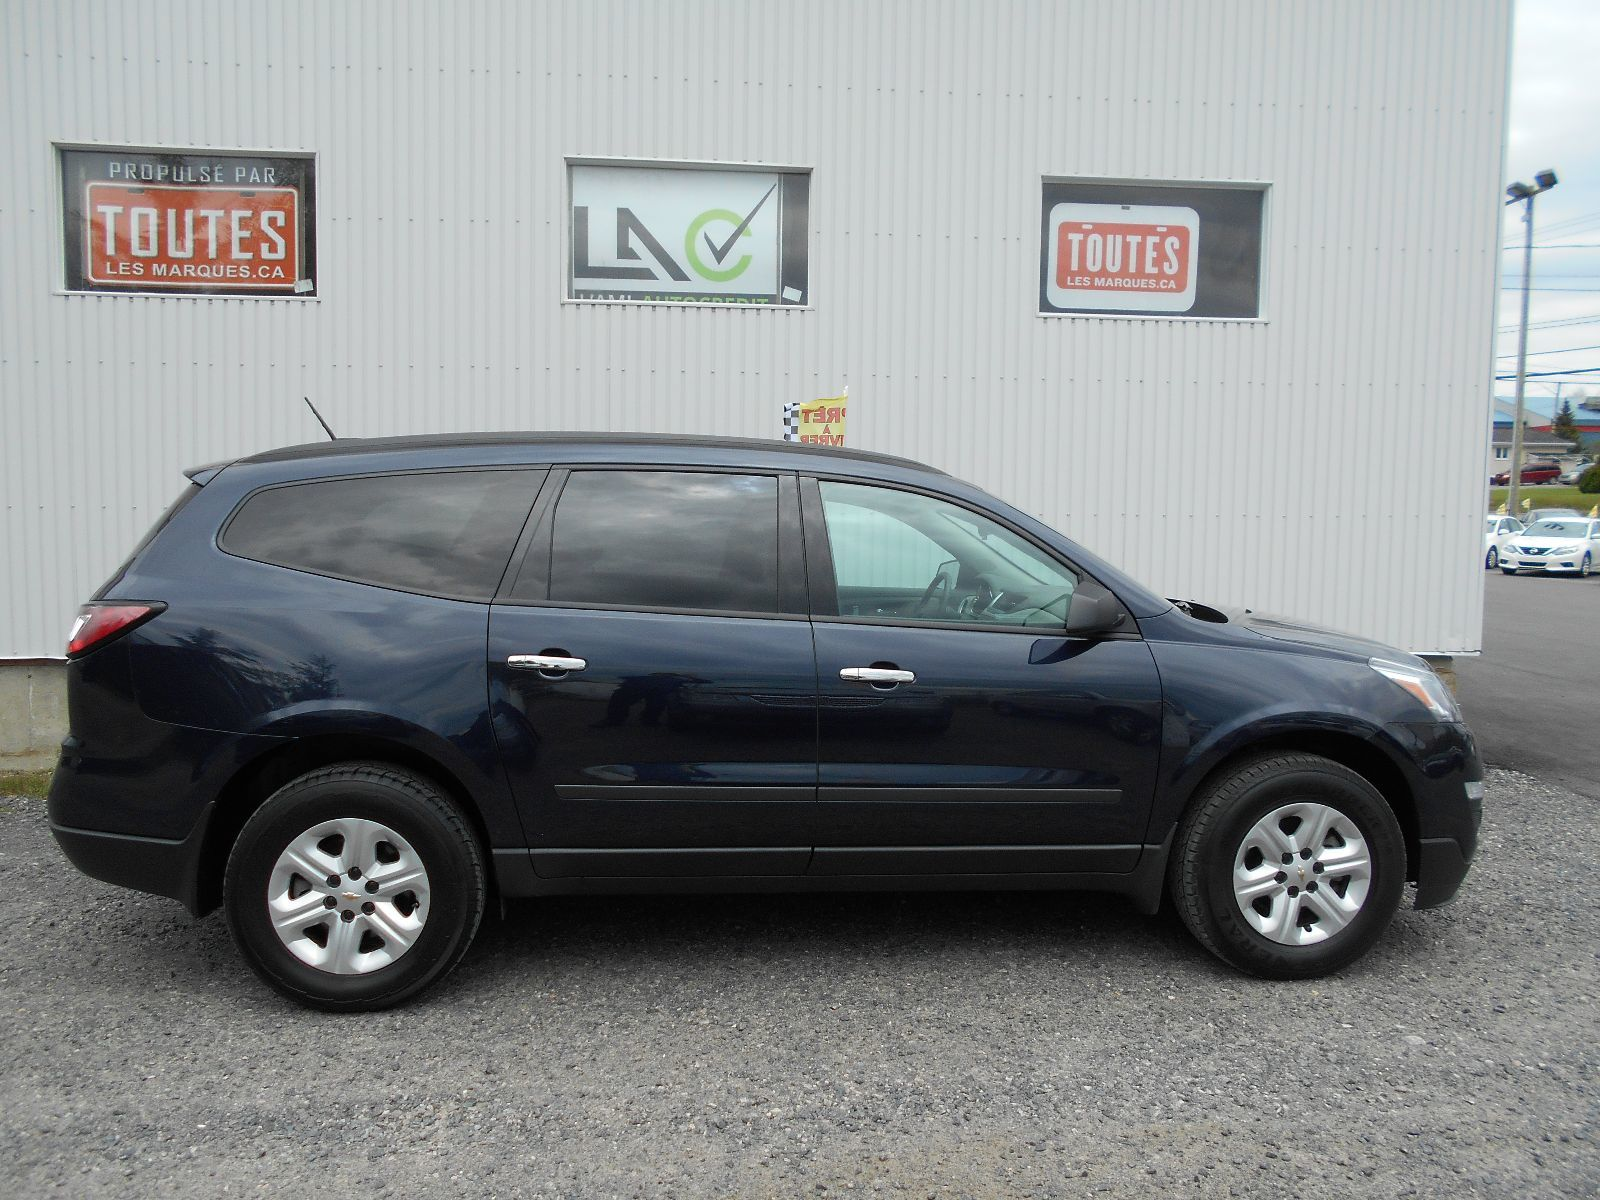 hight resolution of used 2017 chevrolet traverse ls for sale 28995 0 l ami autocr dit secteur saguenay